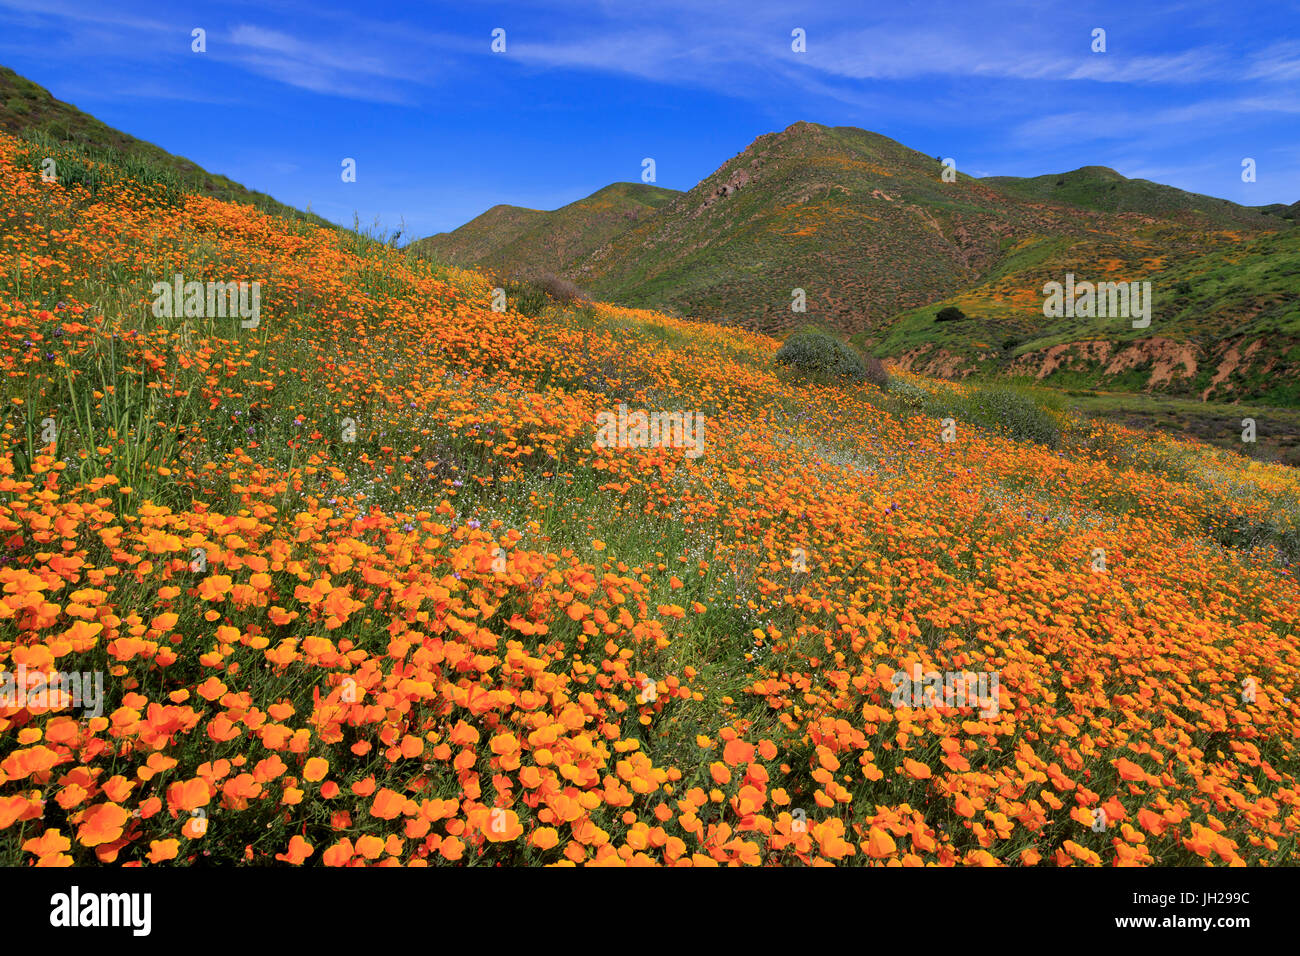 Poppies, Walker Canyon, Lake Elsinore, Riverside County, California, United States of America, North America - Stock Image